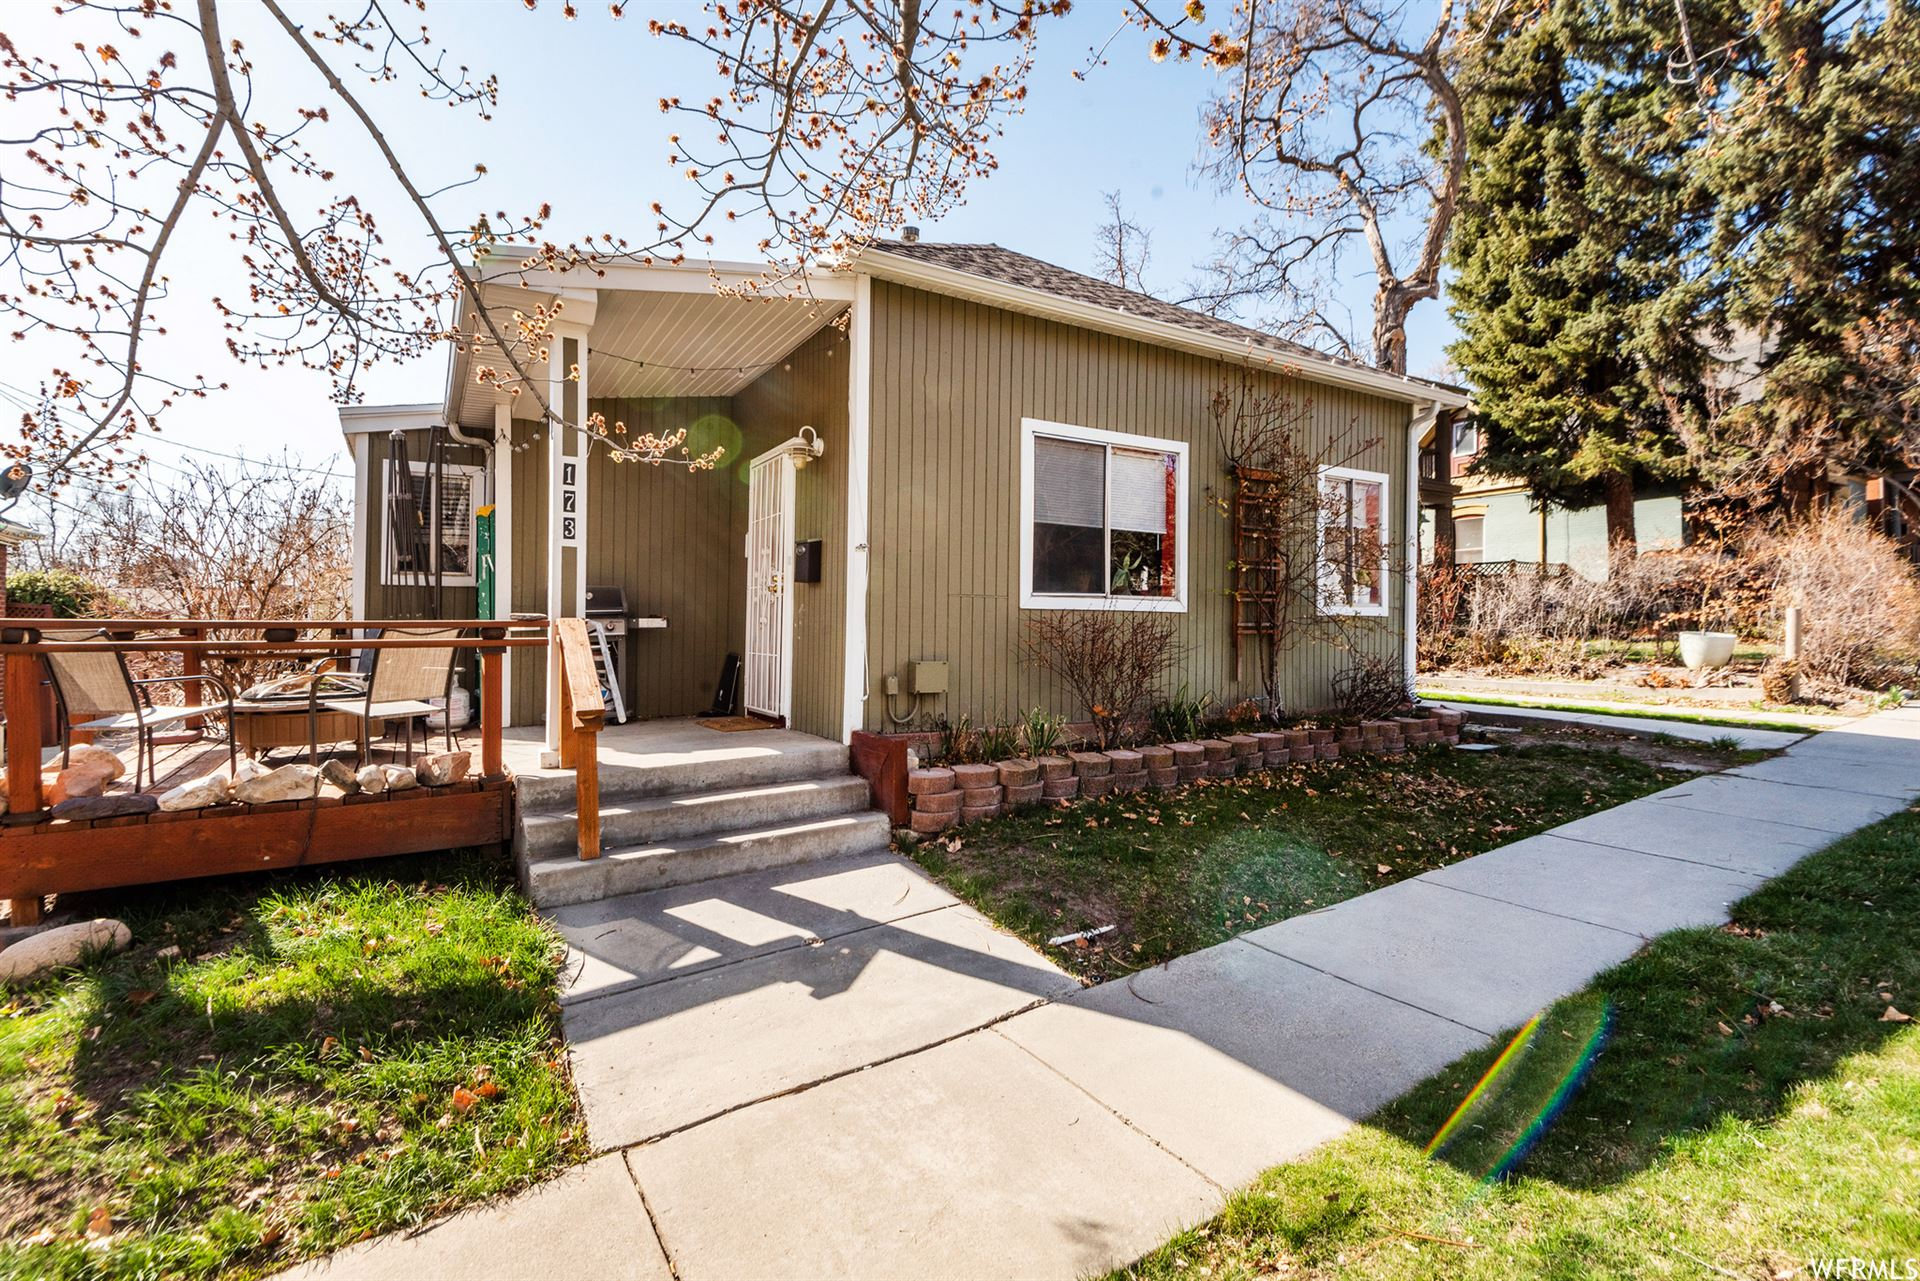 Photo of 173 N H E ST, Salt Lake City, UT 84103 (MLS # 1733281)